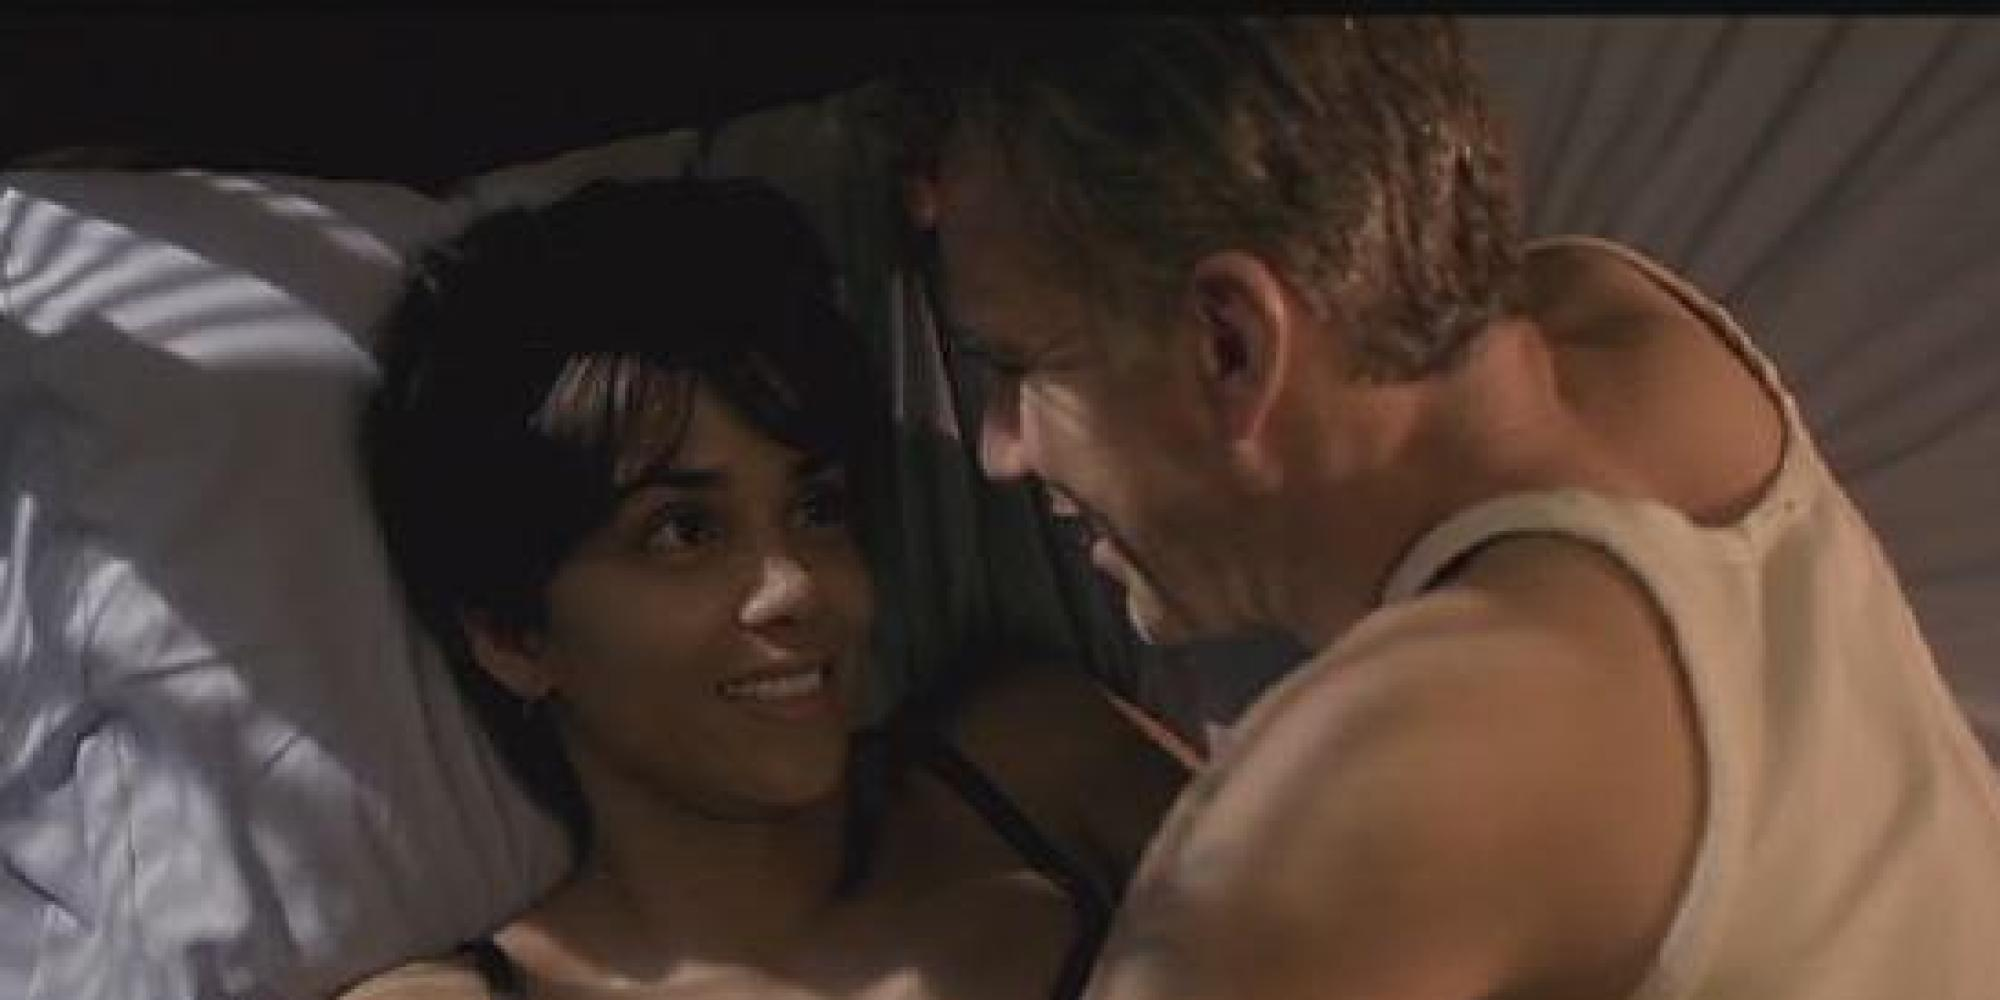 Halle berry real life sex tape